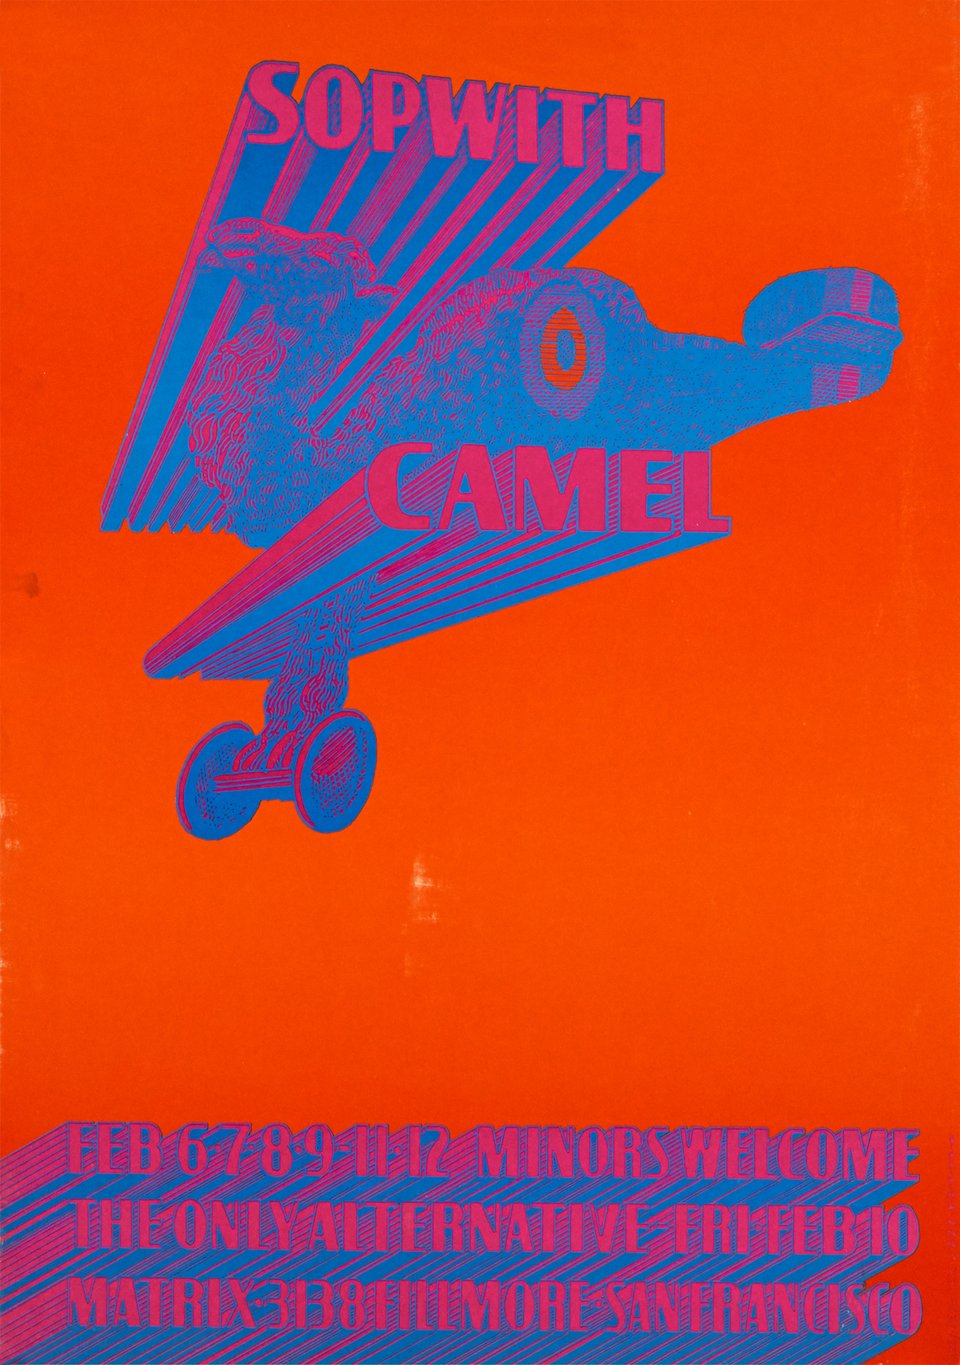 Sop with Camel at the Matrix – Affiche ancienne – Victor MOSCOSO – 1967